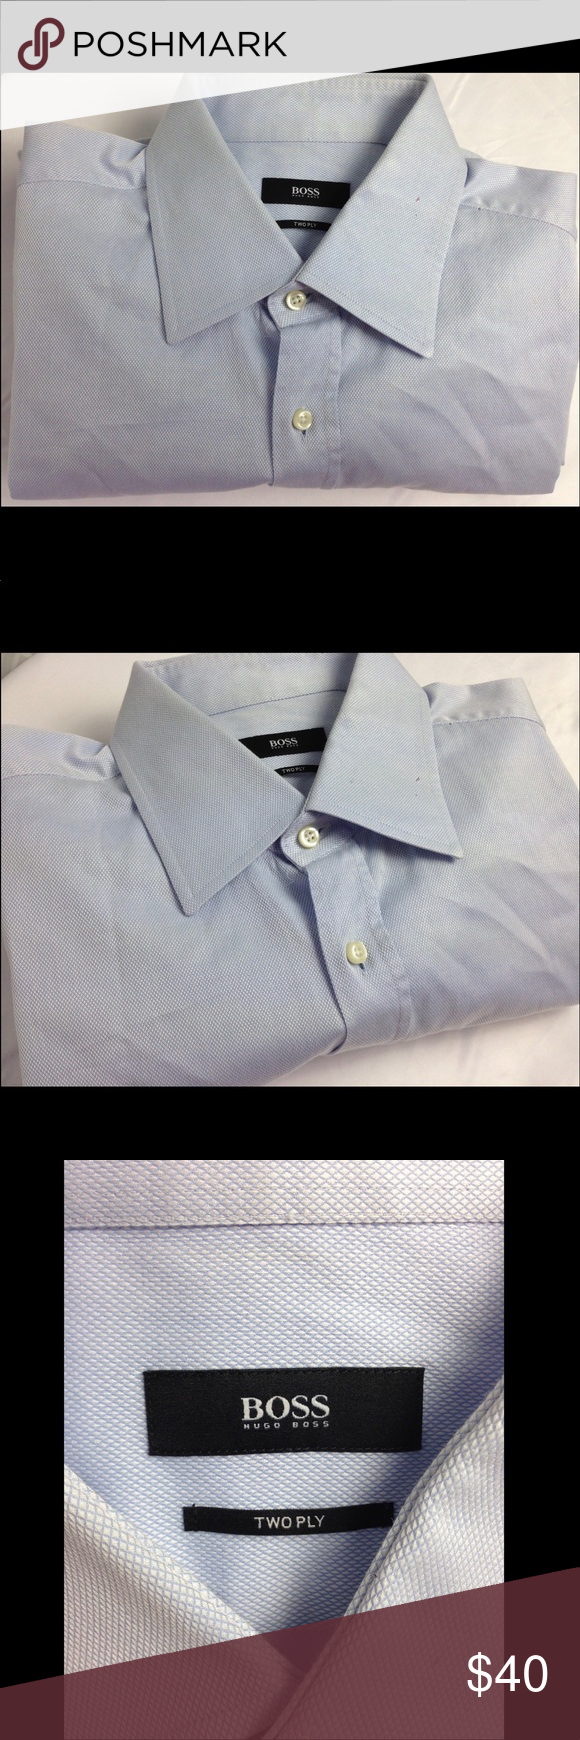 60a84bd42 BOSS Hugo Light Blue 2-ply Cotton FC Dress Shirt BOSS Hugo Boss Men's  Career Dress Shirt Size 16 1/2 - 42 solid light blue point collar French  cuffs Two Ply ...